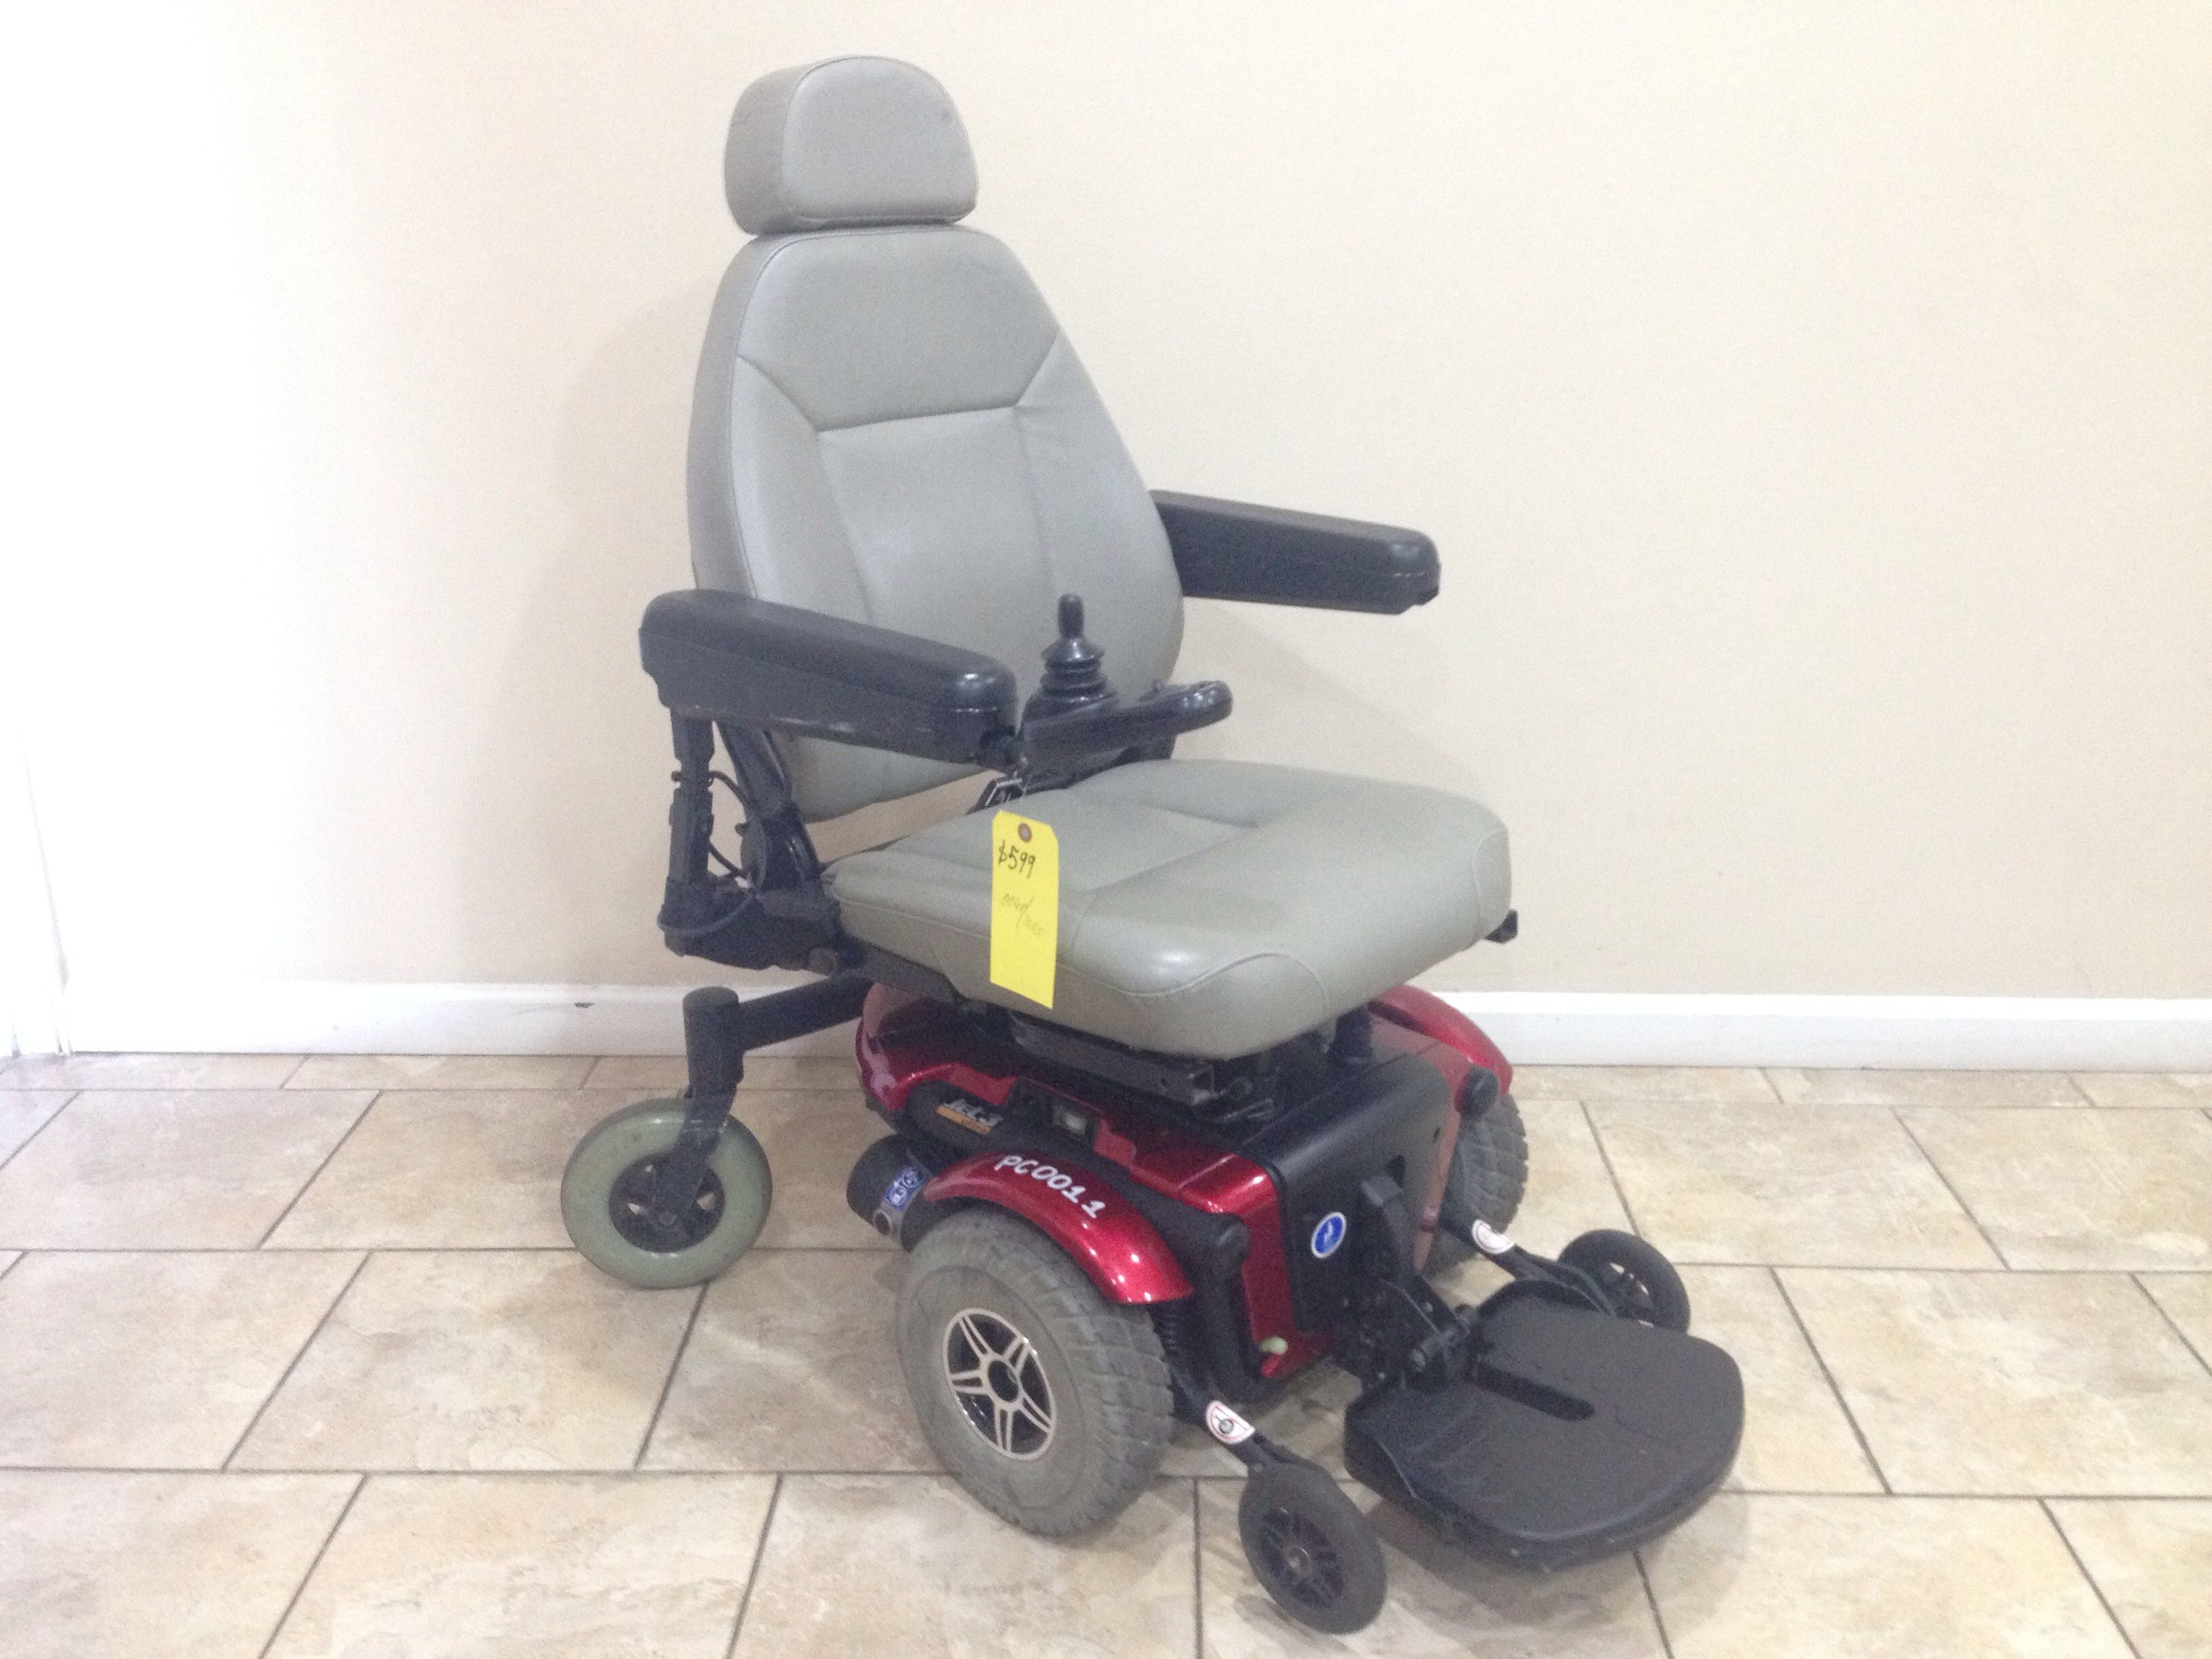 Jet 3 Power Chair Wiring Diagram Library Electric Wheelchair Ultra Manual Trusted Diagrams U2022 Pride Batteries